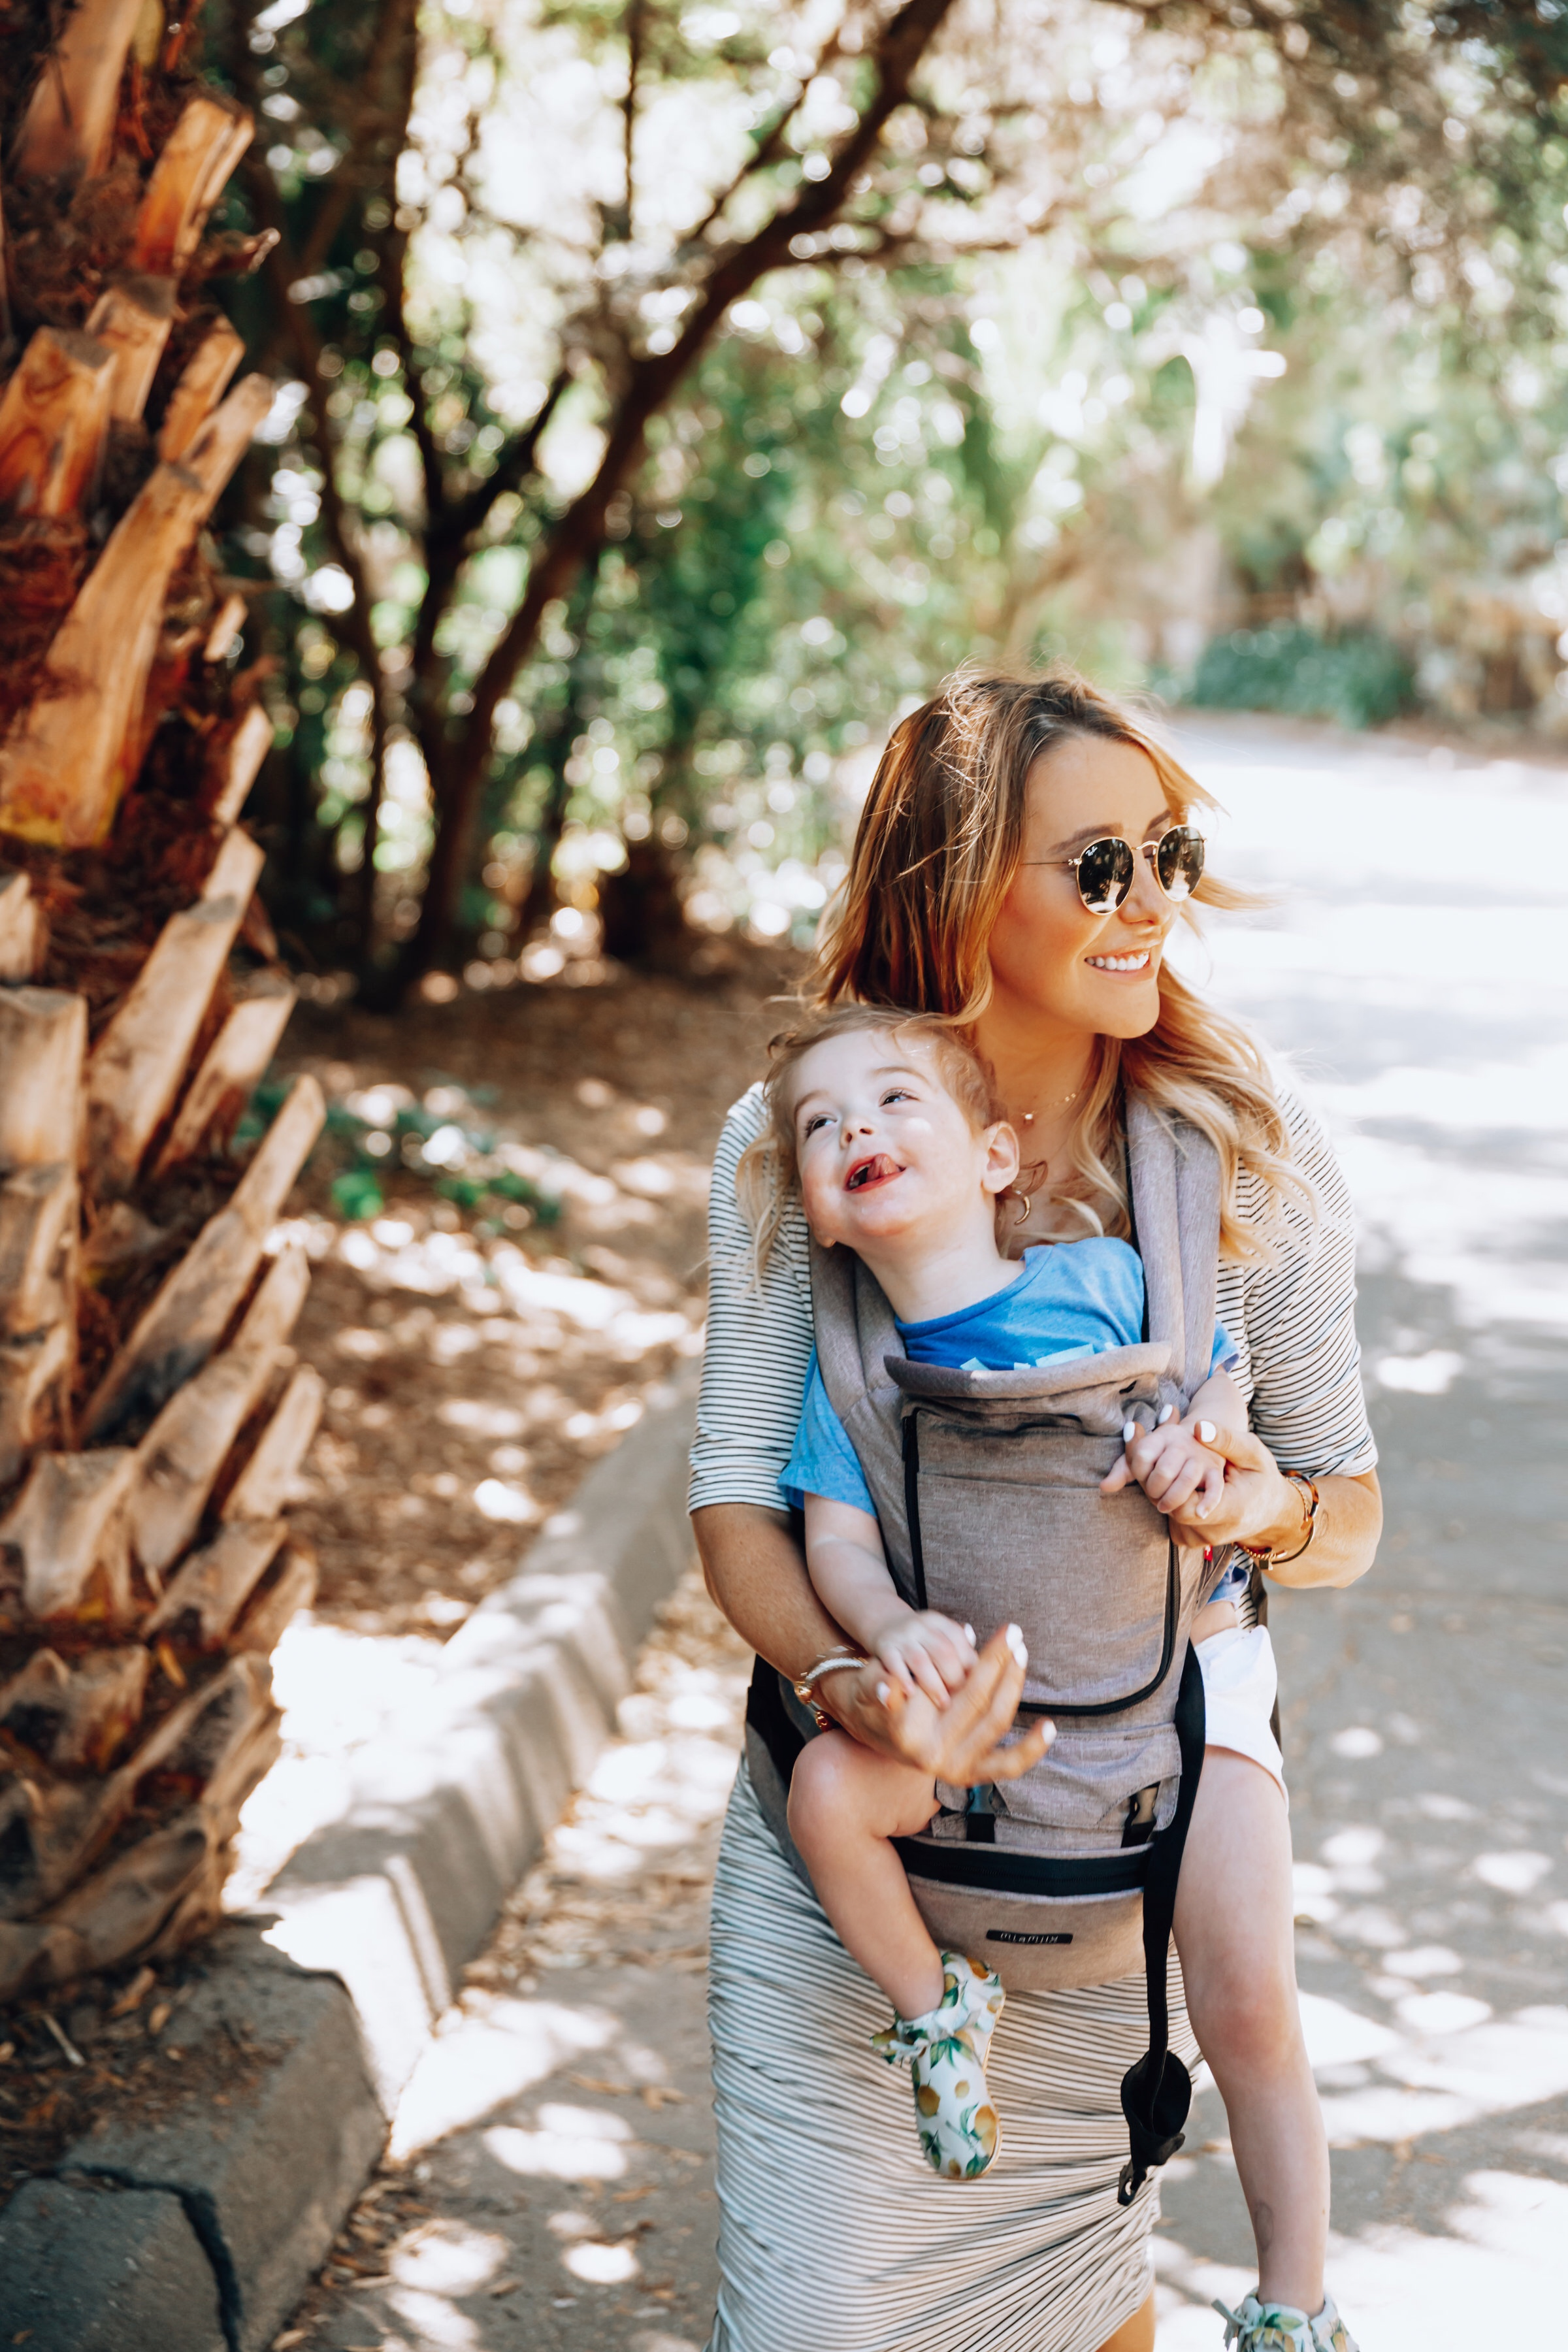 Miamily Hipster Read This Before You Buy A Baby Carrier For The Love